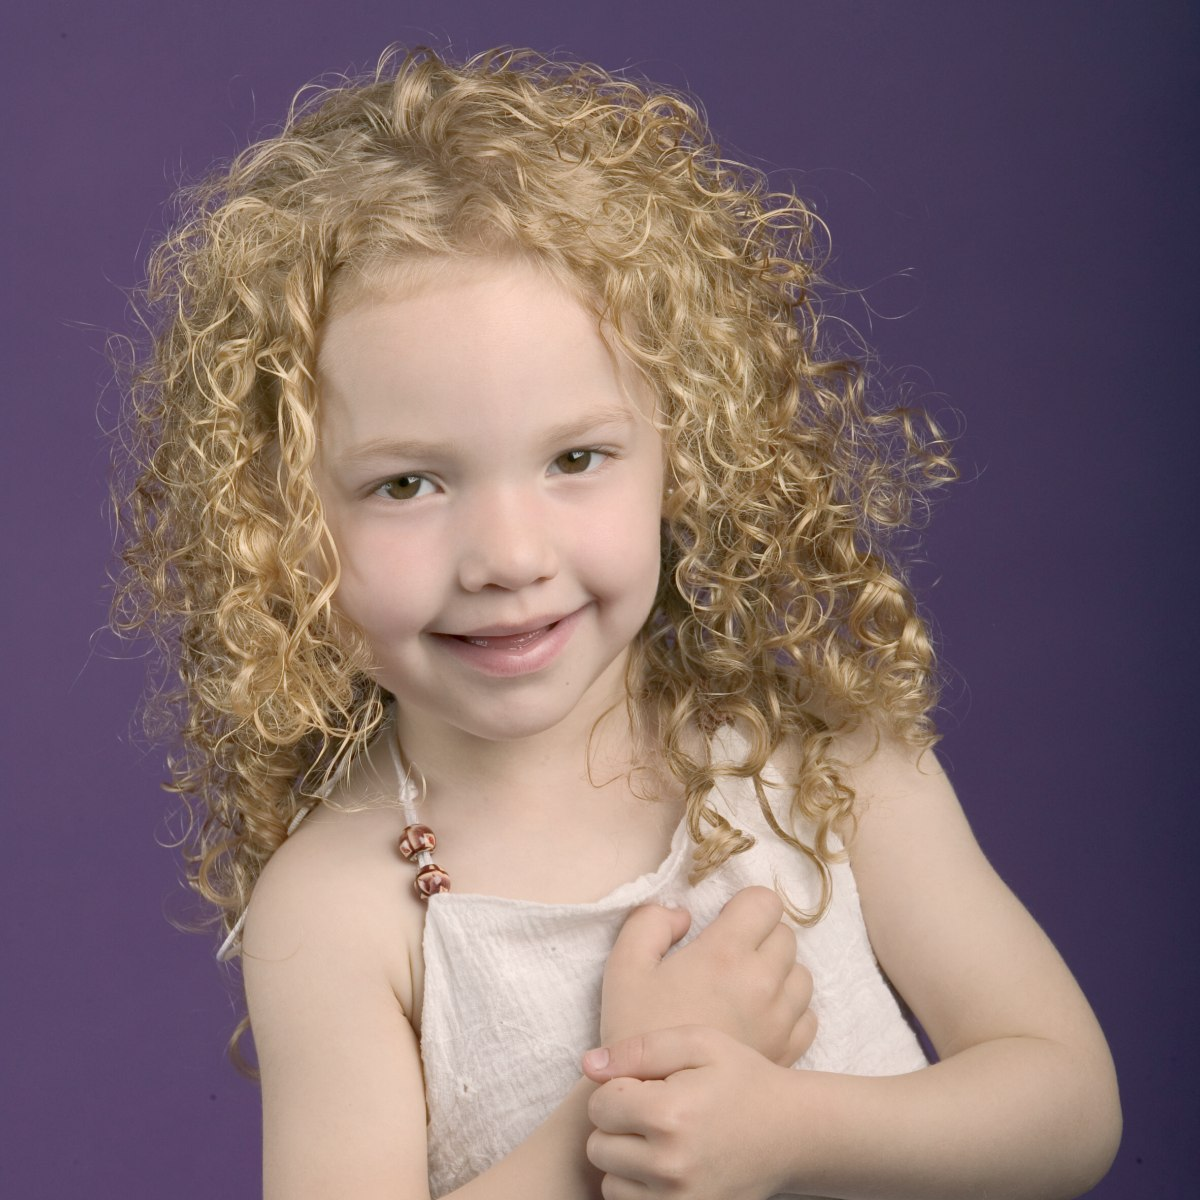 Terrific Spiraling Curls For A Little Girl Simple Hair Styling Hairstyles For Women Draintrainus